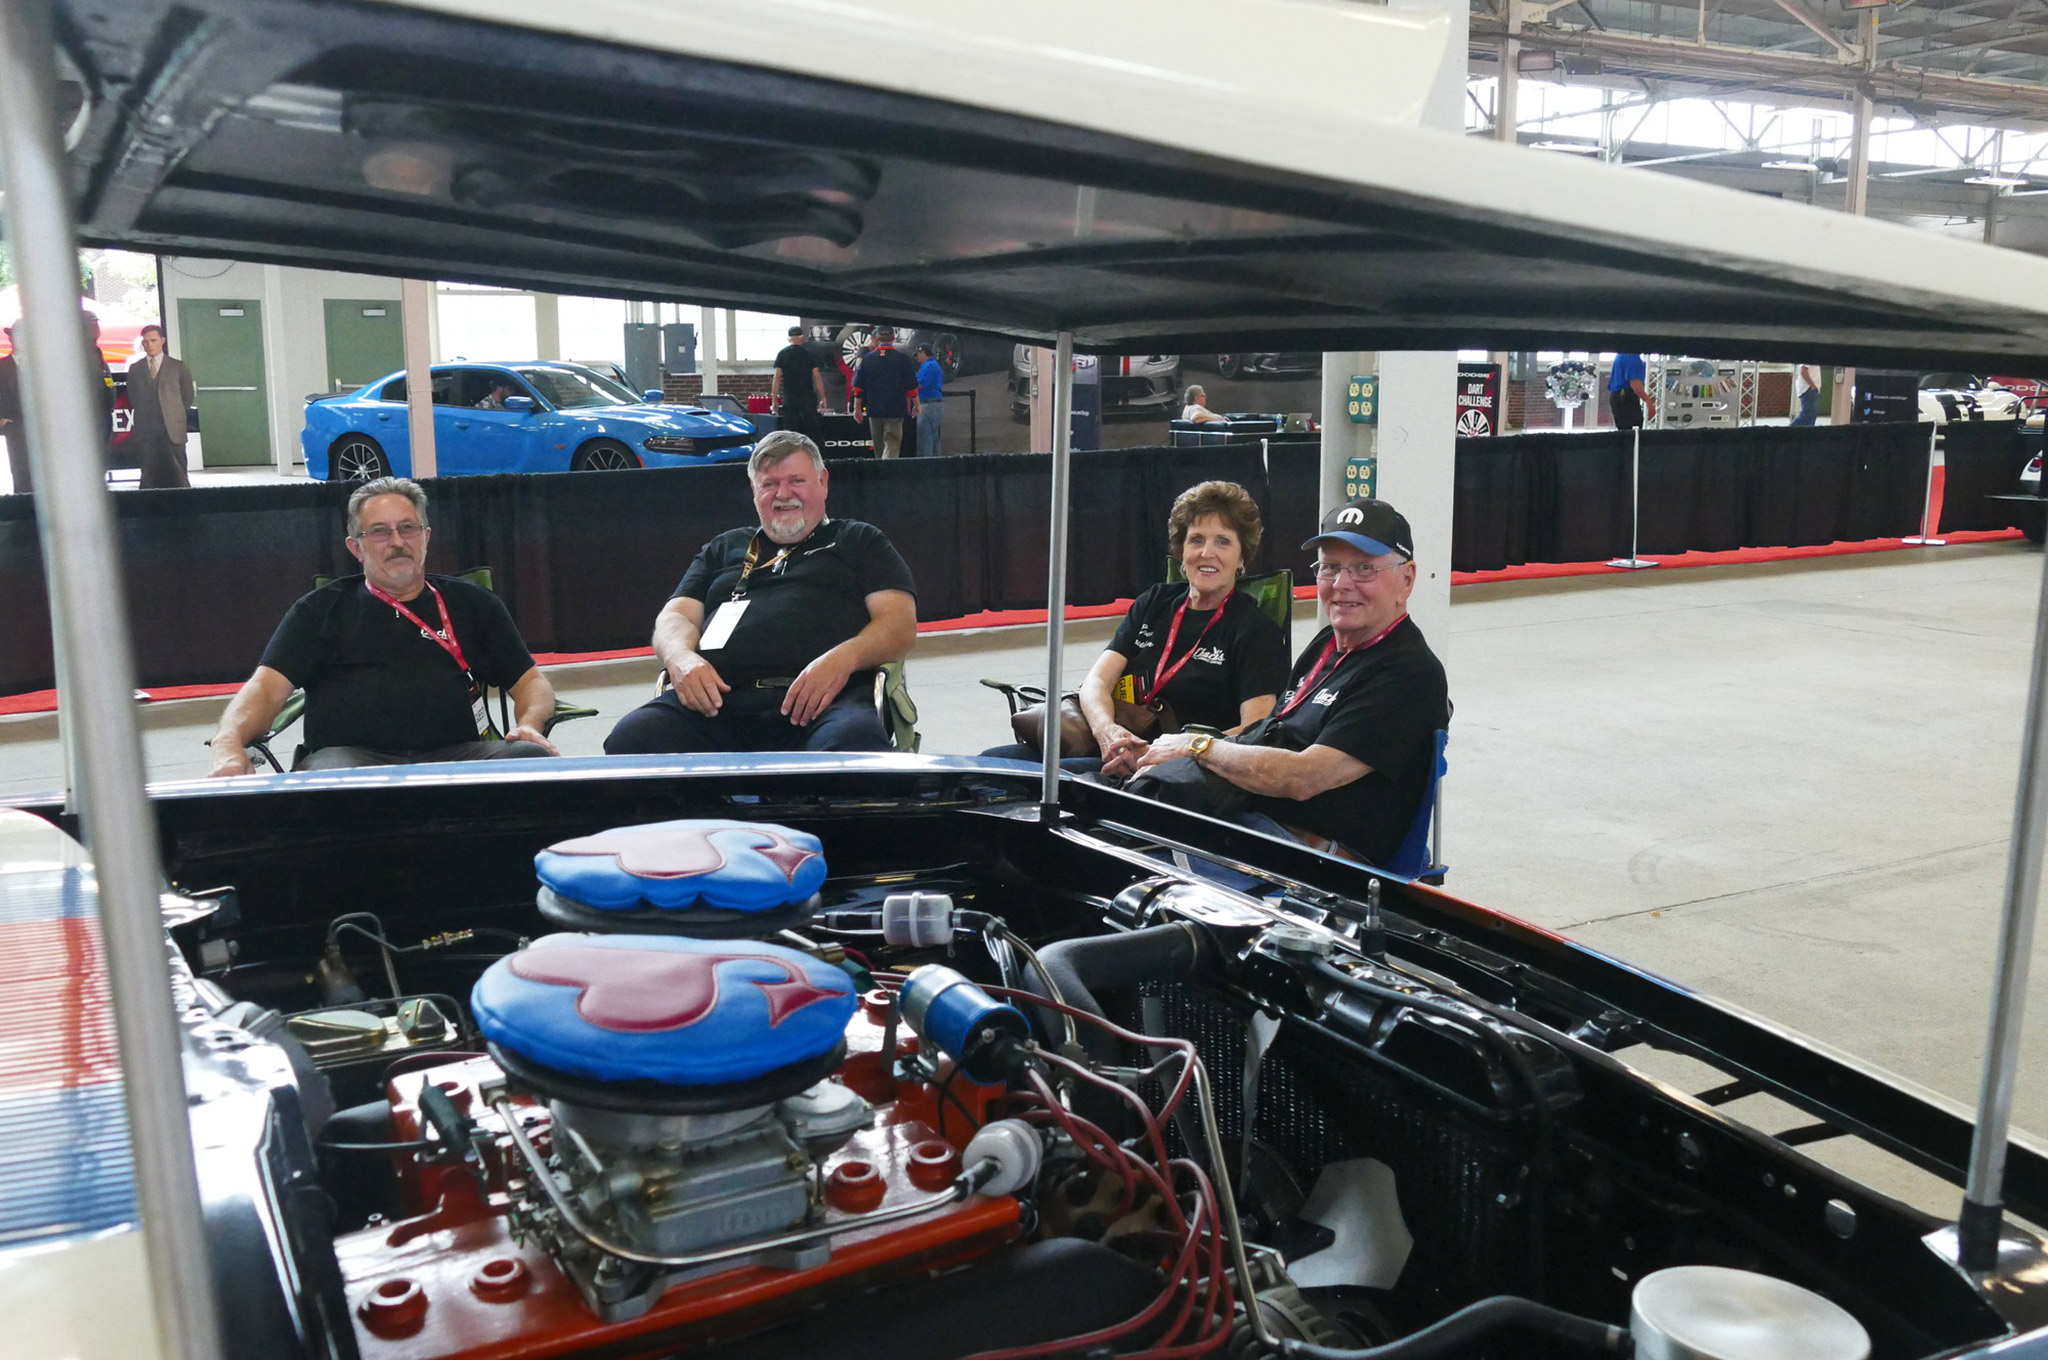 Don Grotheer (right), his wife Joann, owner Chuck Smith, and a friend sit in the staging area on Saturday. The engine in Grotheer's 1968 Barracuda is visible in the foreground.